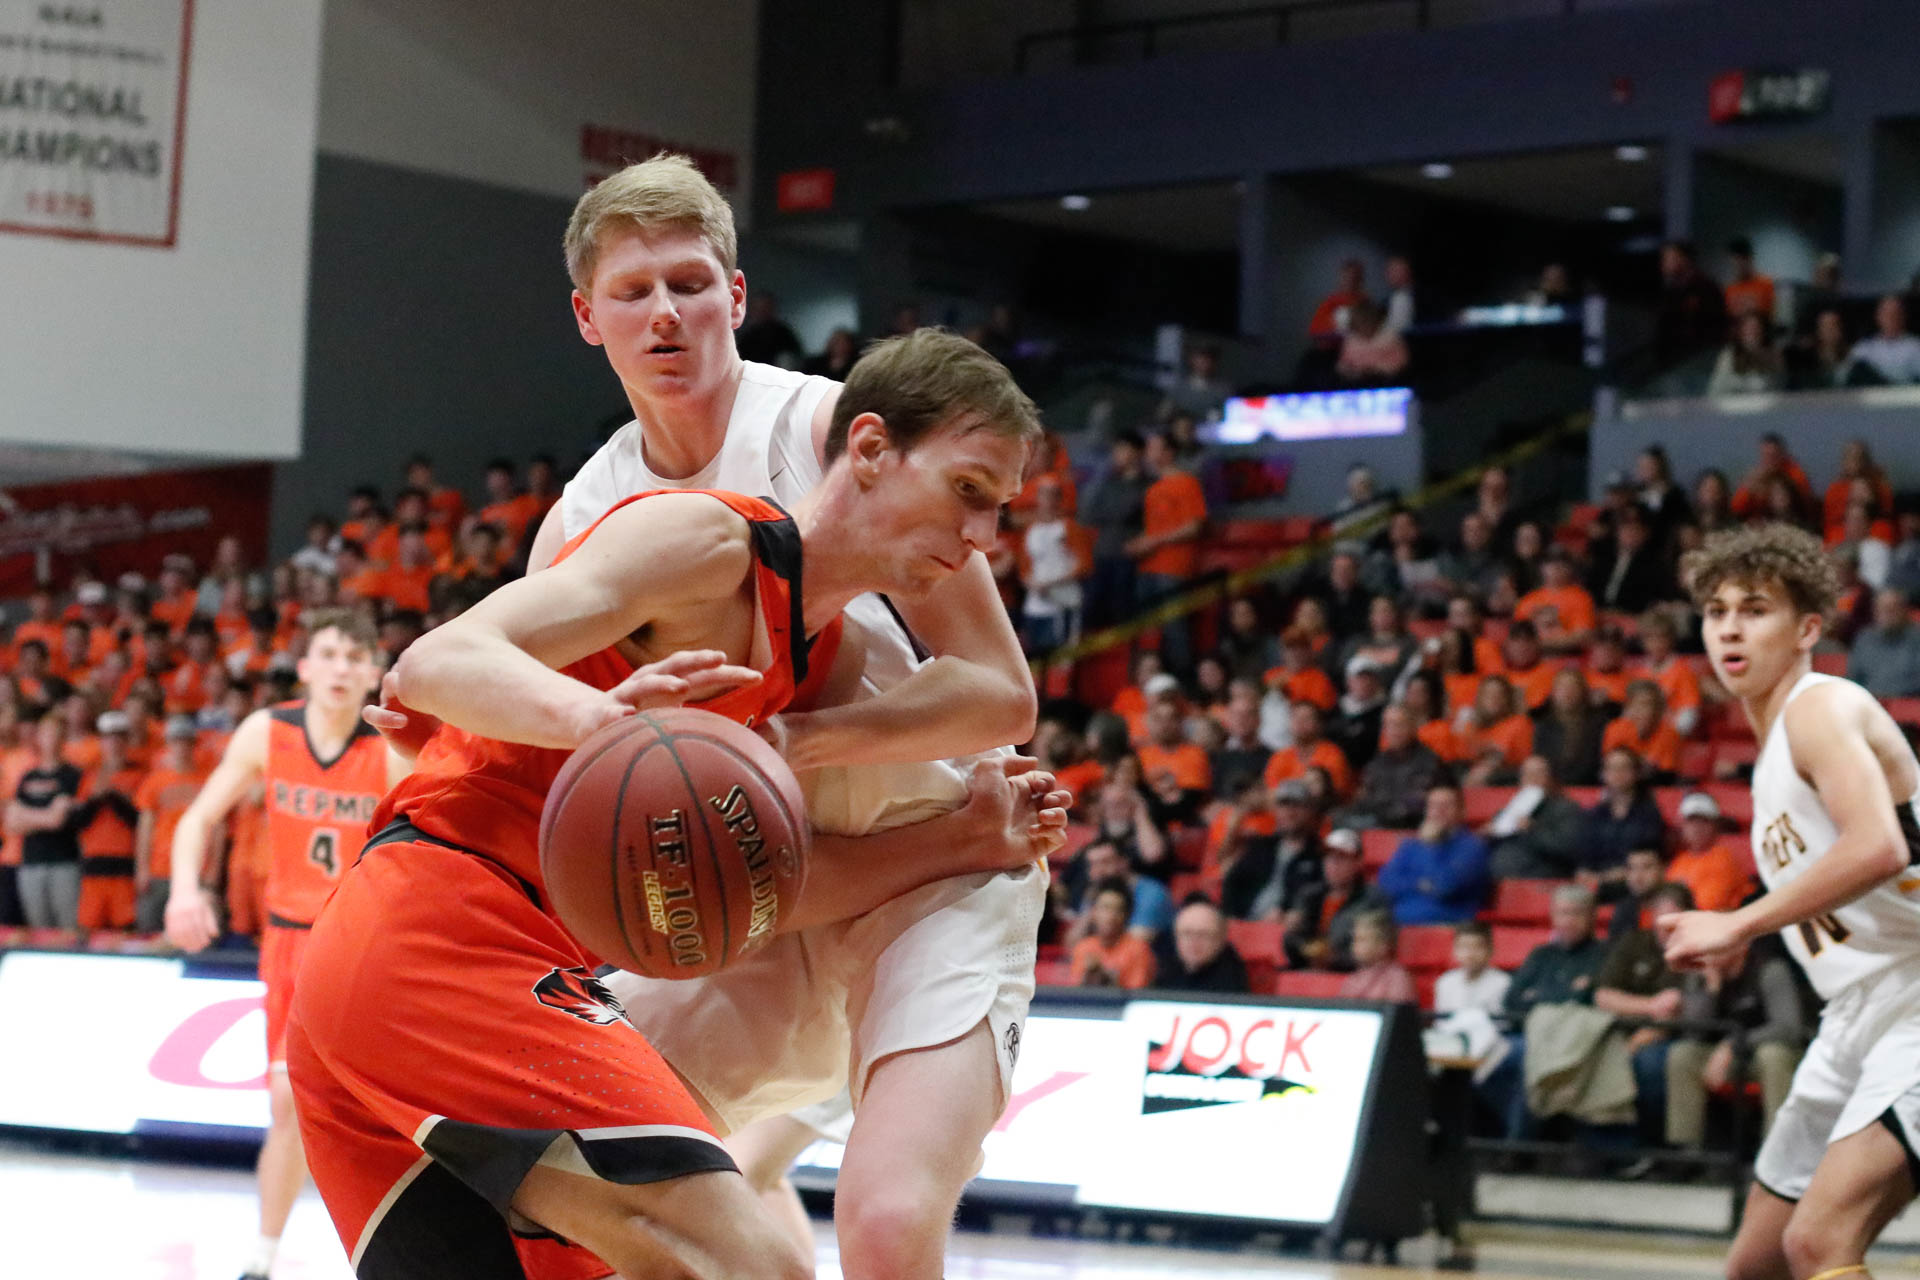 Tigers Fall Short In Sectionals